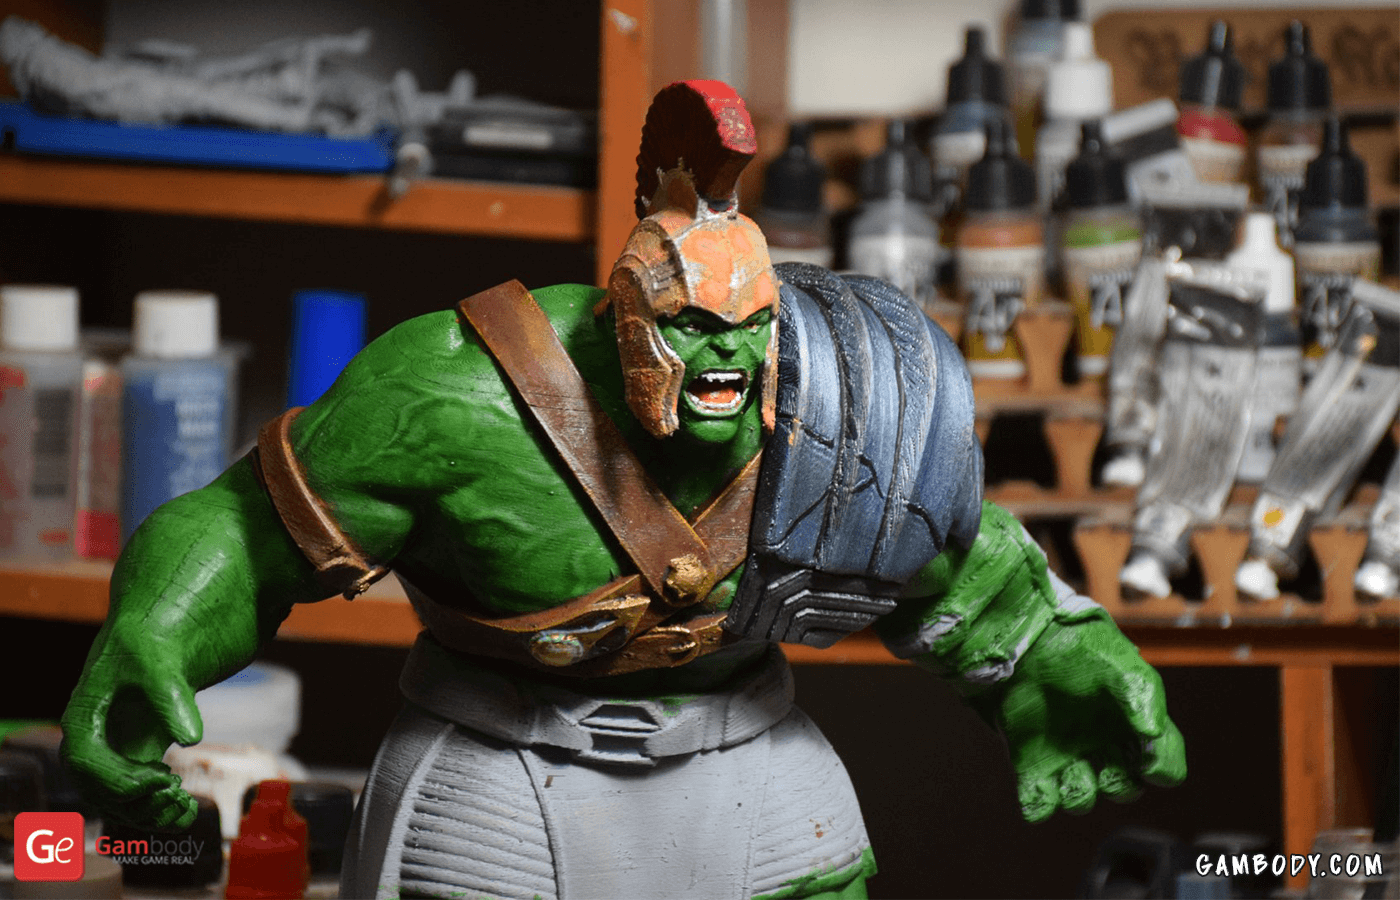 Armored Hulk 3D Printing Figurine Photo 2